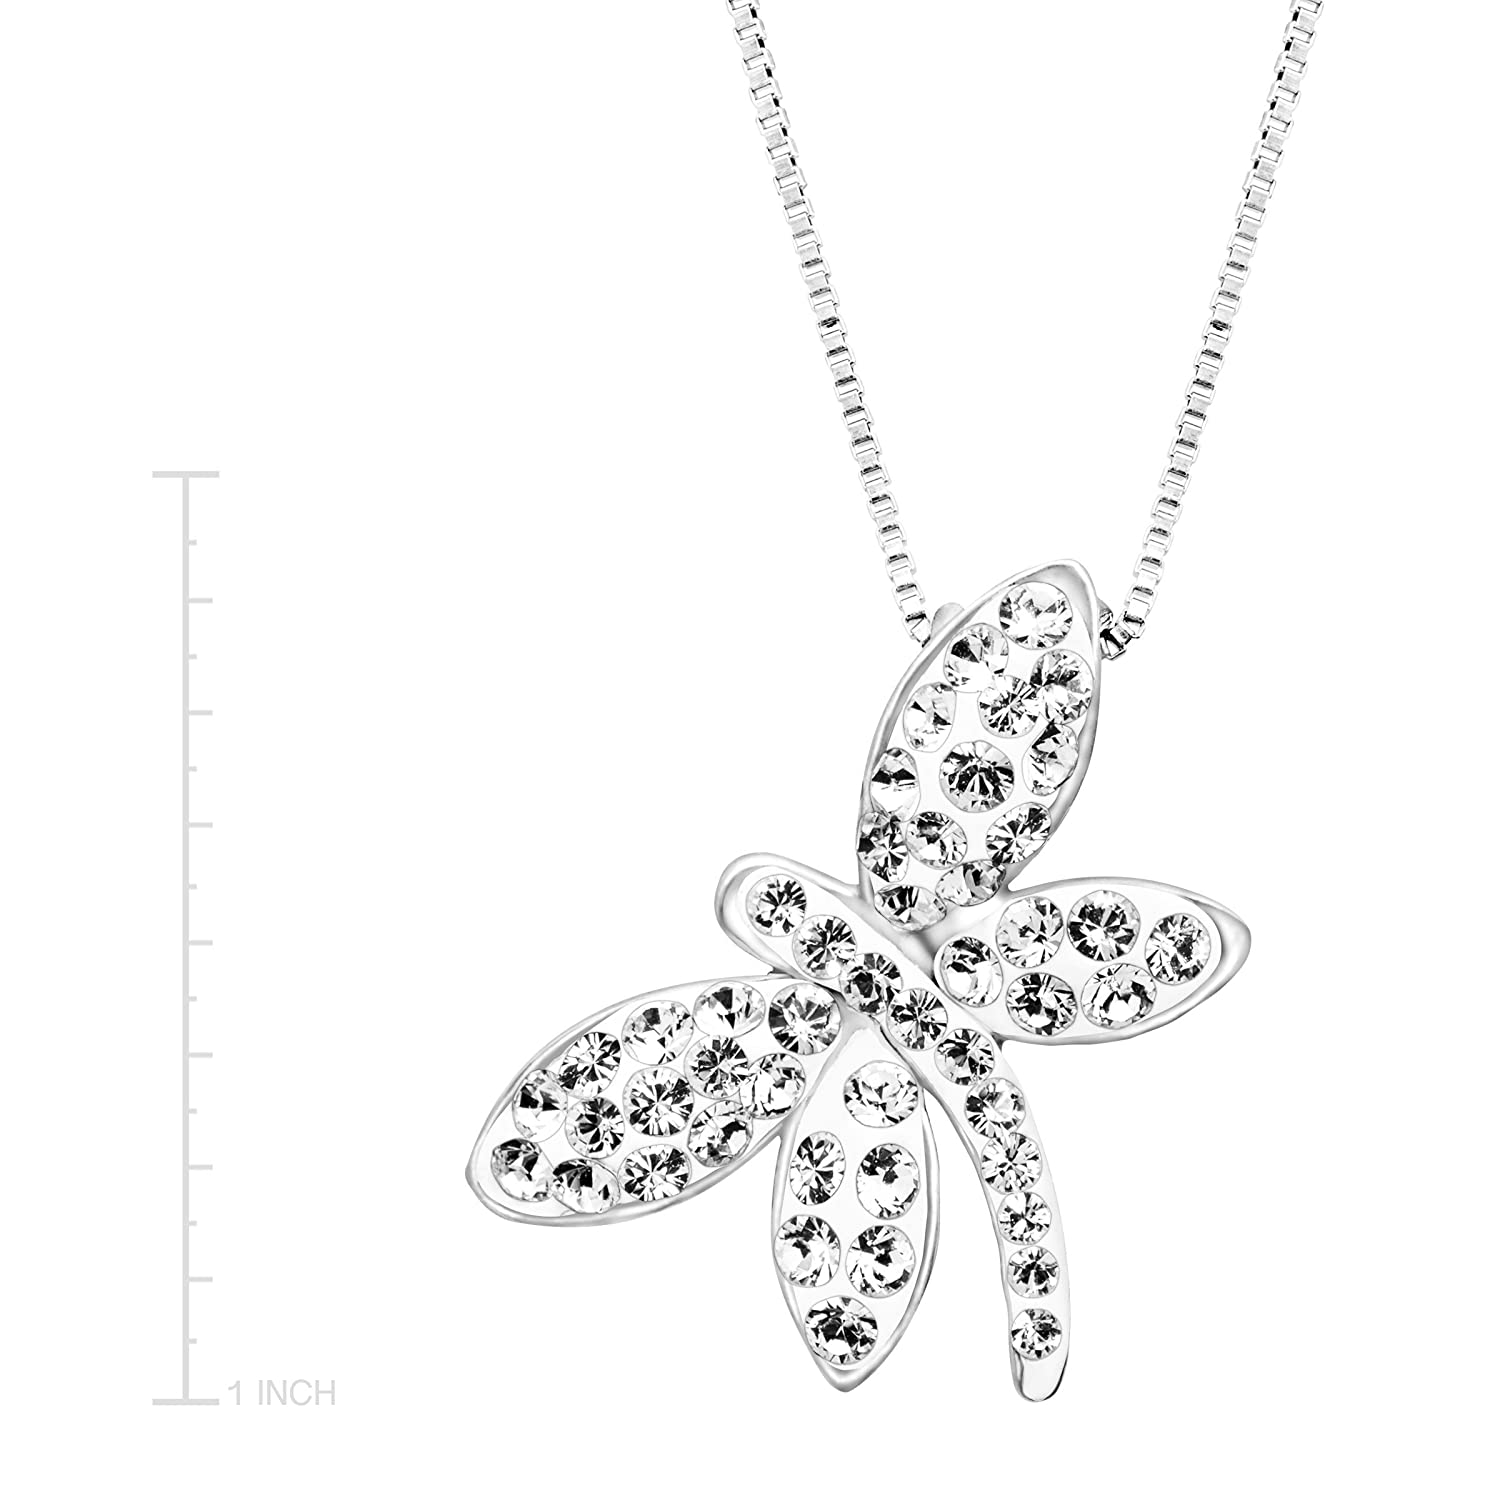 64eb822a5 Amazon.com: Crystaluxe Dragonfly Pendant Necklace with White Swarovski  Crystals in Sterling Silver, 18